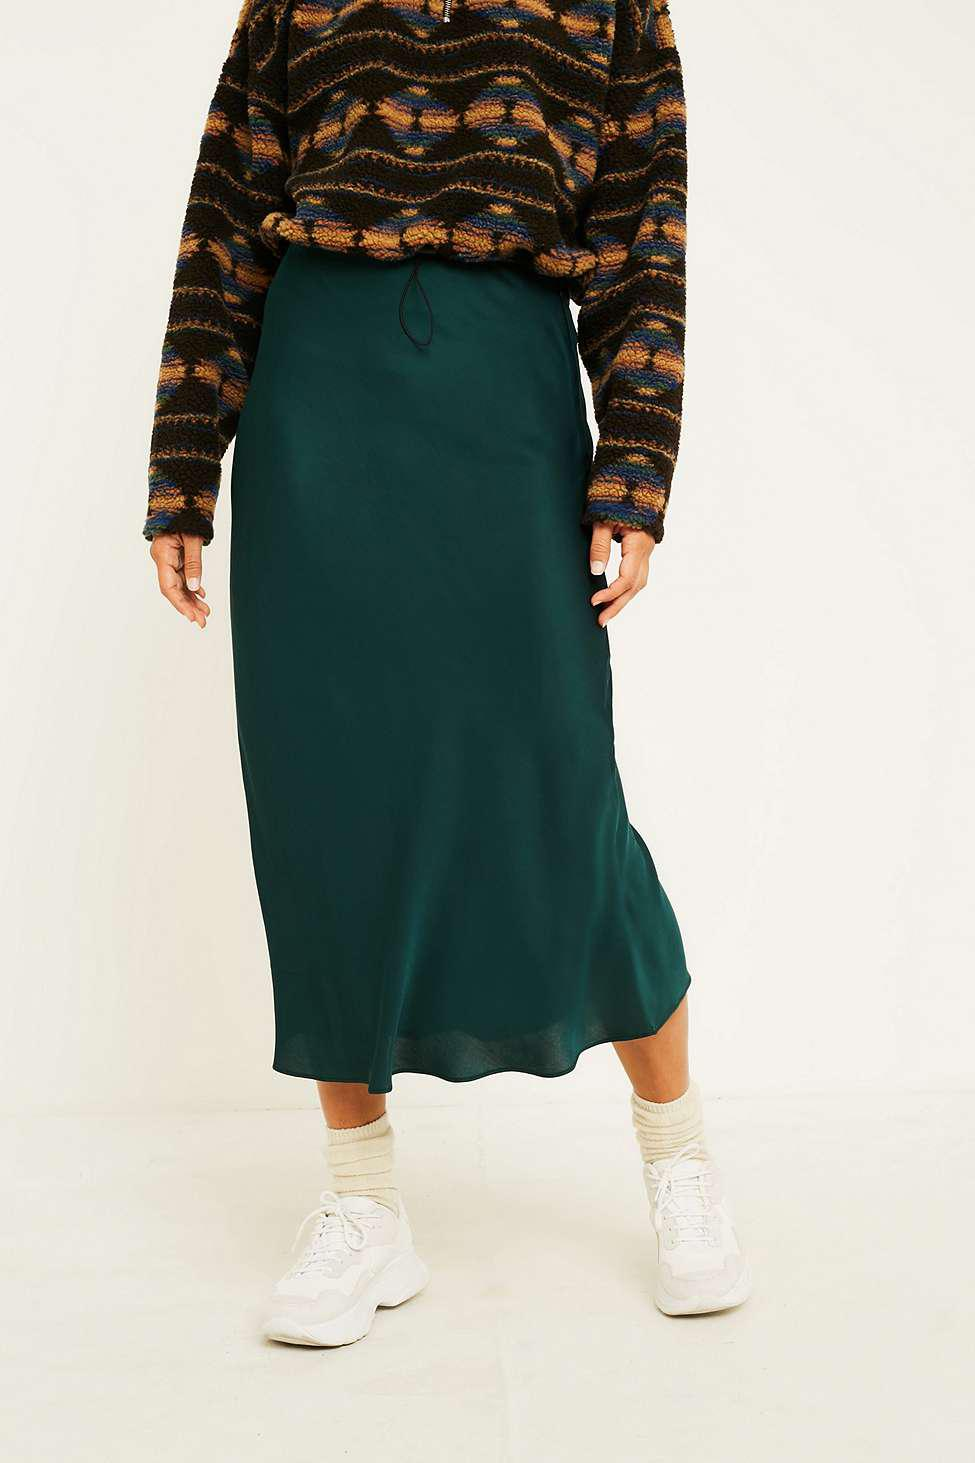 91d745c7b63 Midi Green Satin Skirt | Saddha